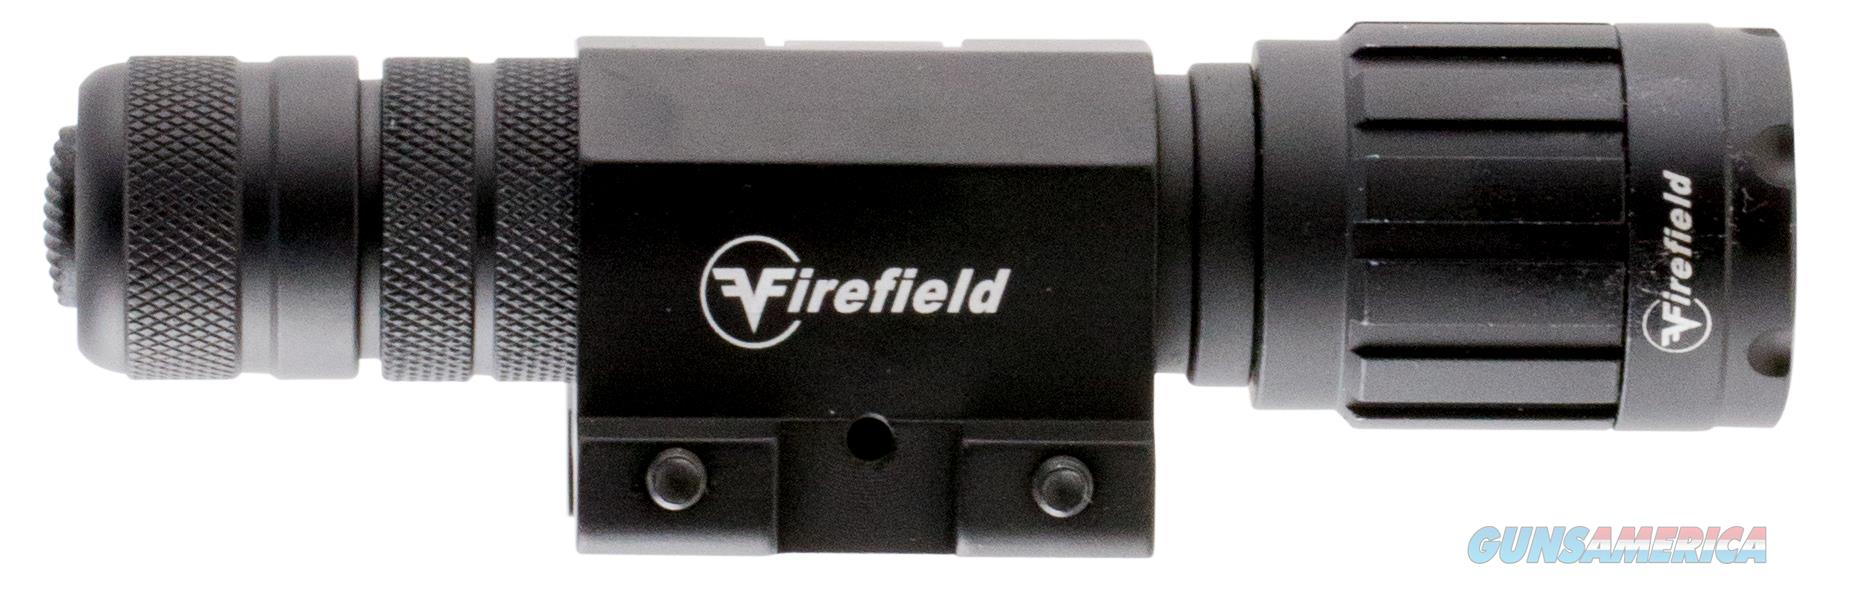 Firefield Ff25004 Hog Illuminator Green Laser Universal W/Picatinny Rail FF25004  Non-Guns > Iron/Metal/Peep Sights